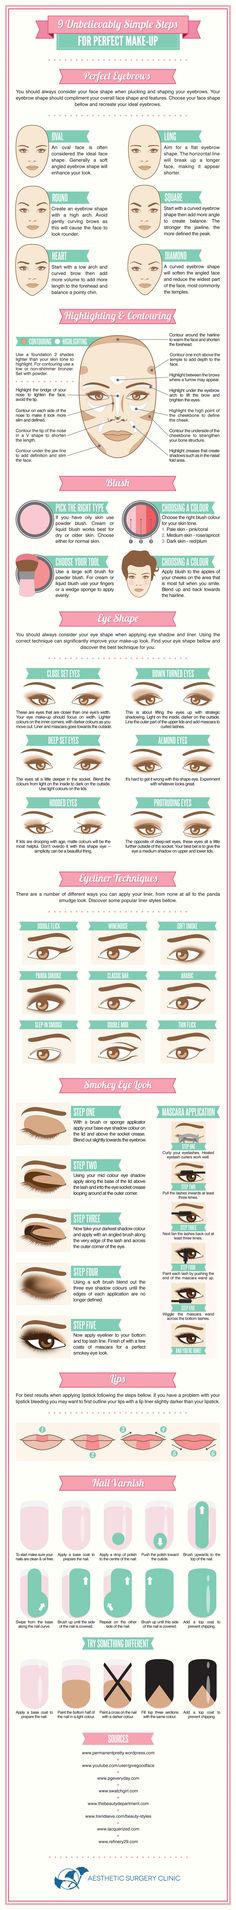 9 Unbelievably Simple Steps For Perfect Make-Up Infographic